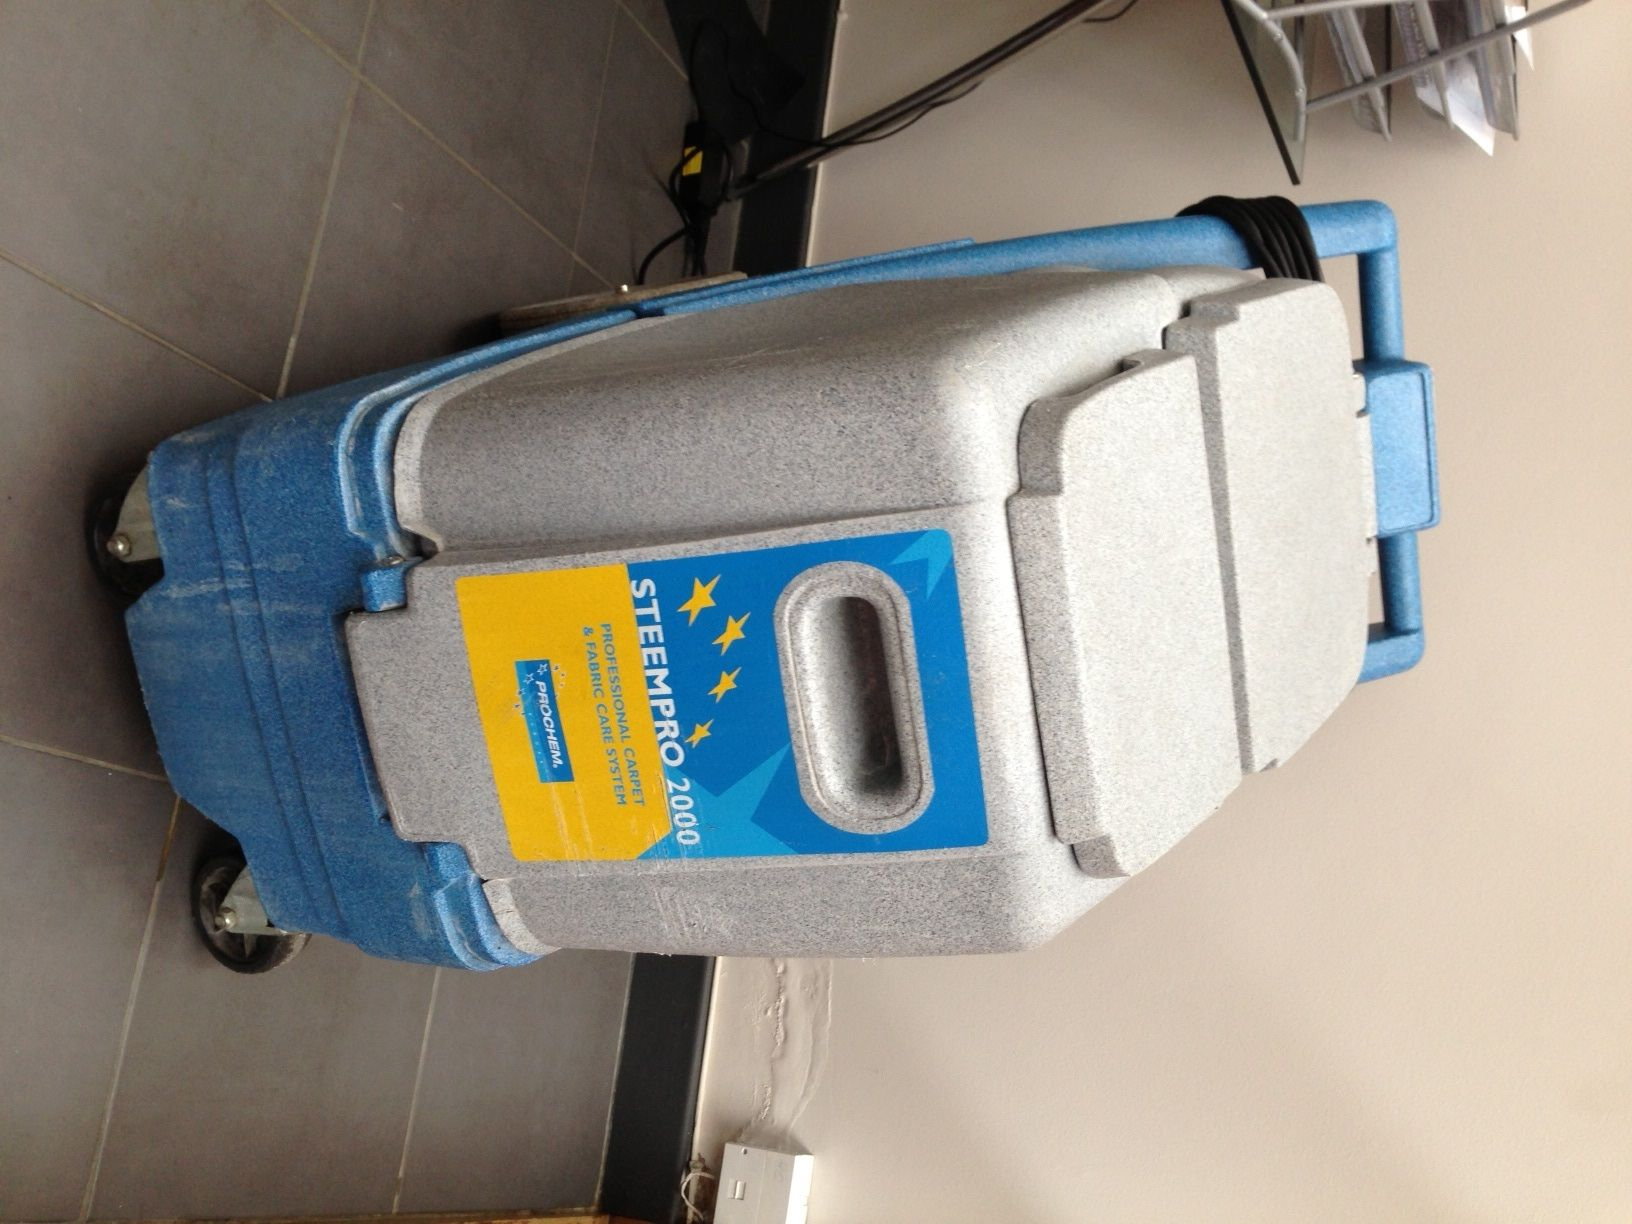 Professional Carpet Cleaning Machine Carpet Cleaning Pinterest